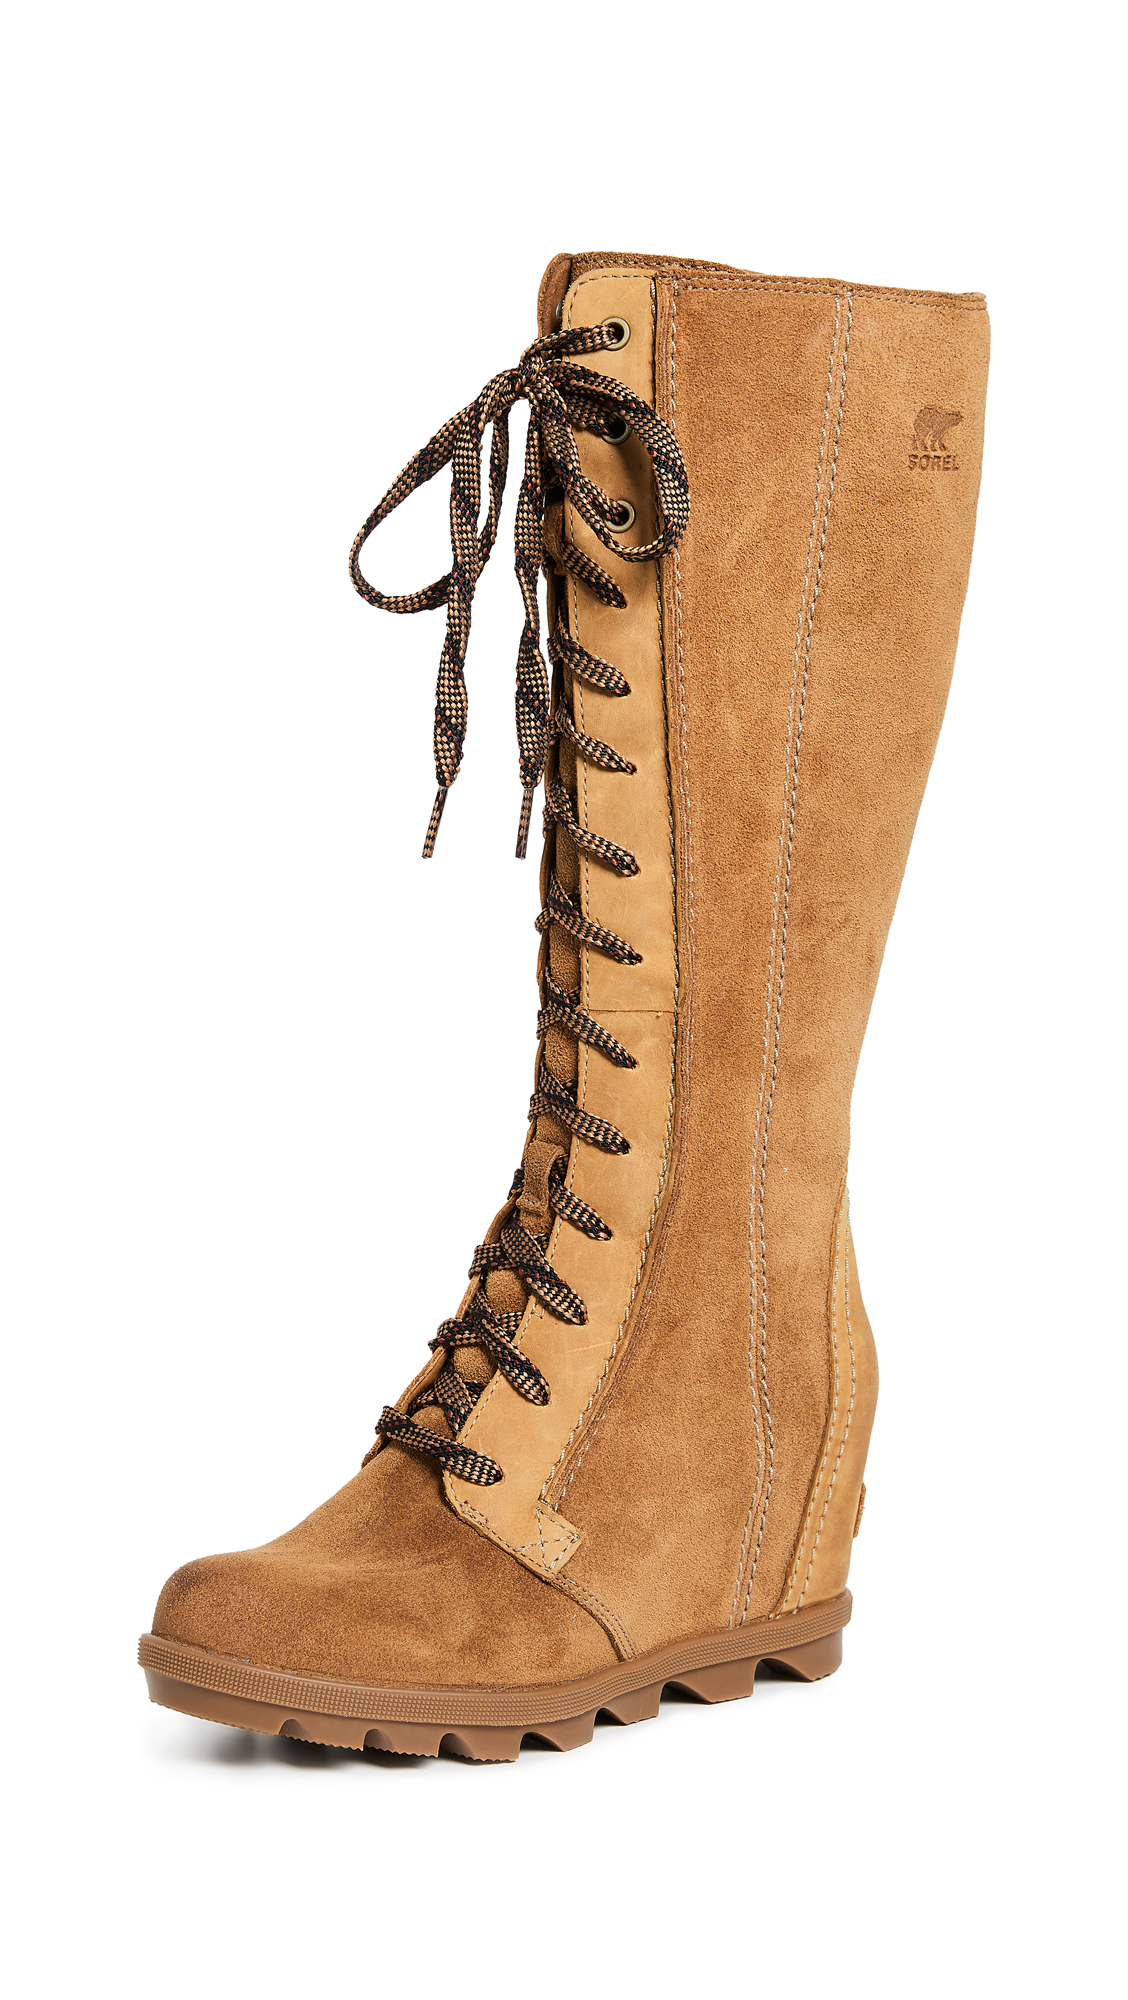 Sorel Joan Of Arctic Wedge II Tall Boots